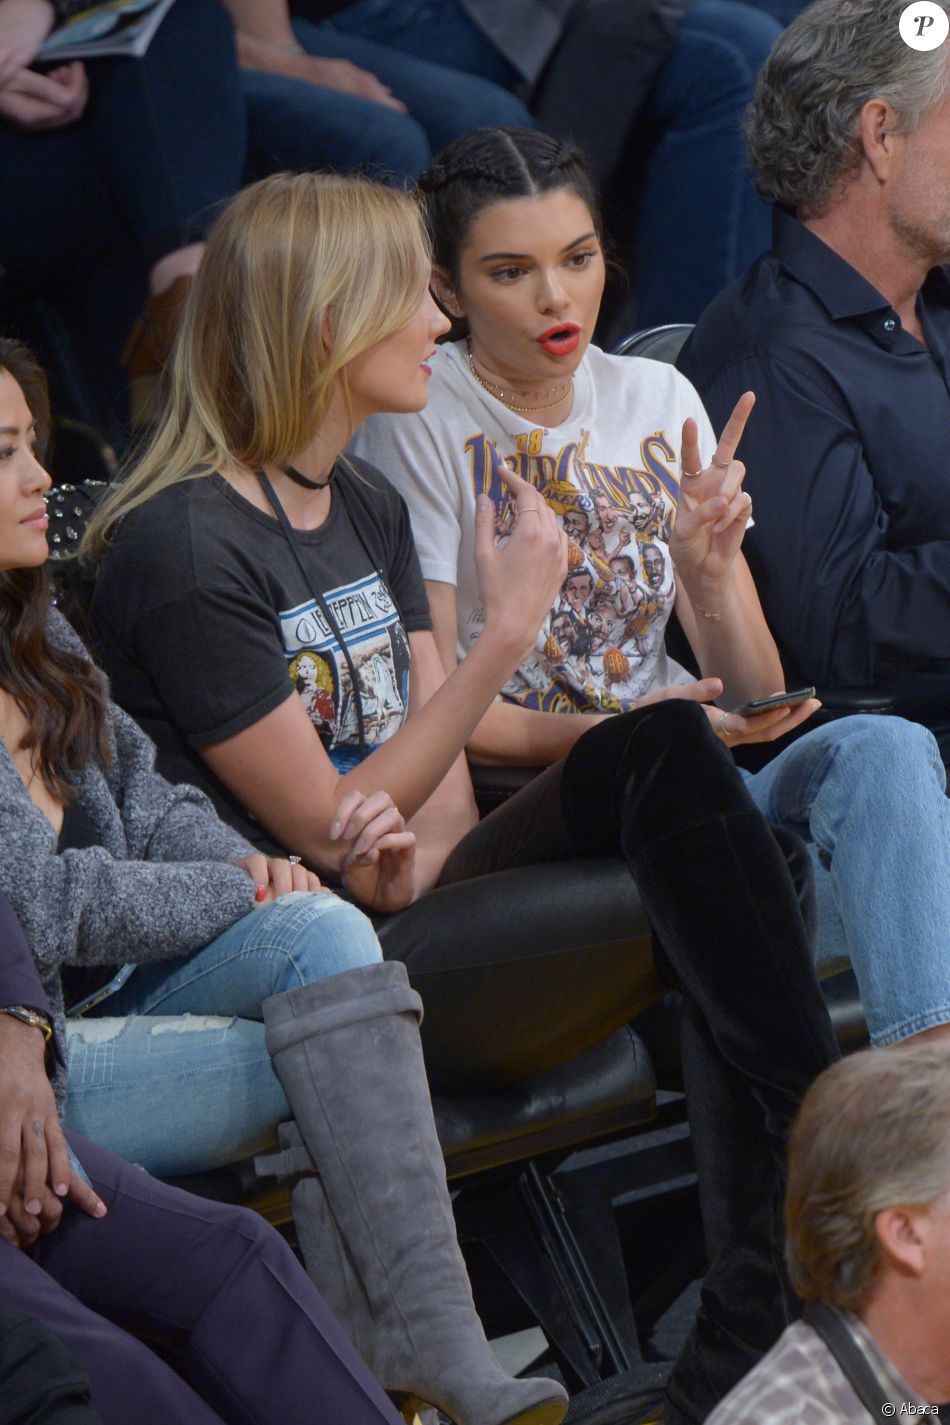 Kendall Jenner et Karlie Kloss lors du match de basket-ball qui oppose l'équipe de Los Angeles aux Rockets de Houston, le 26 octobre 2016 au Staples Center